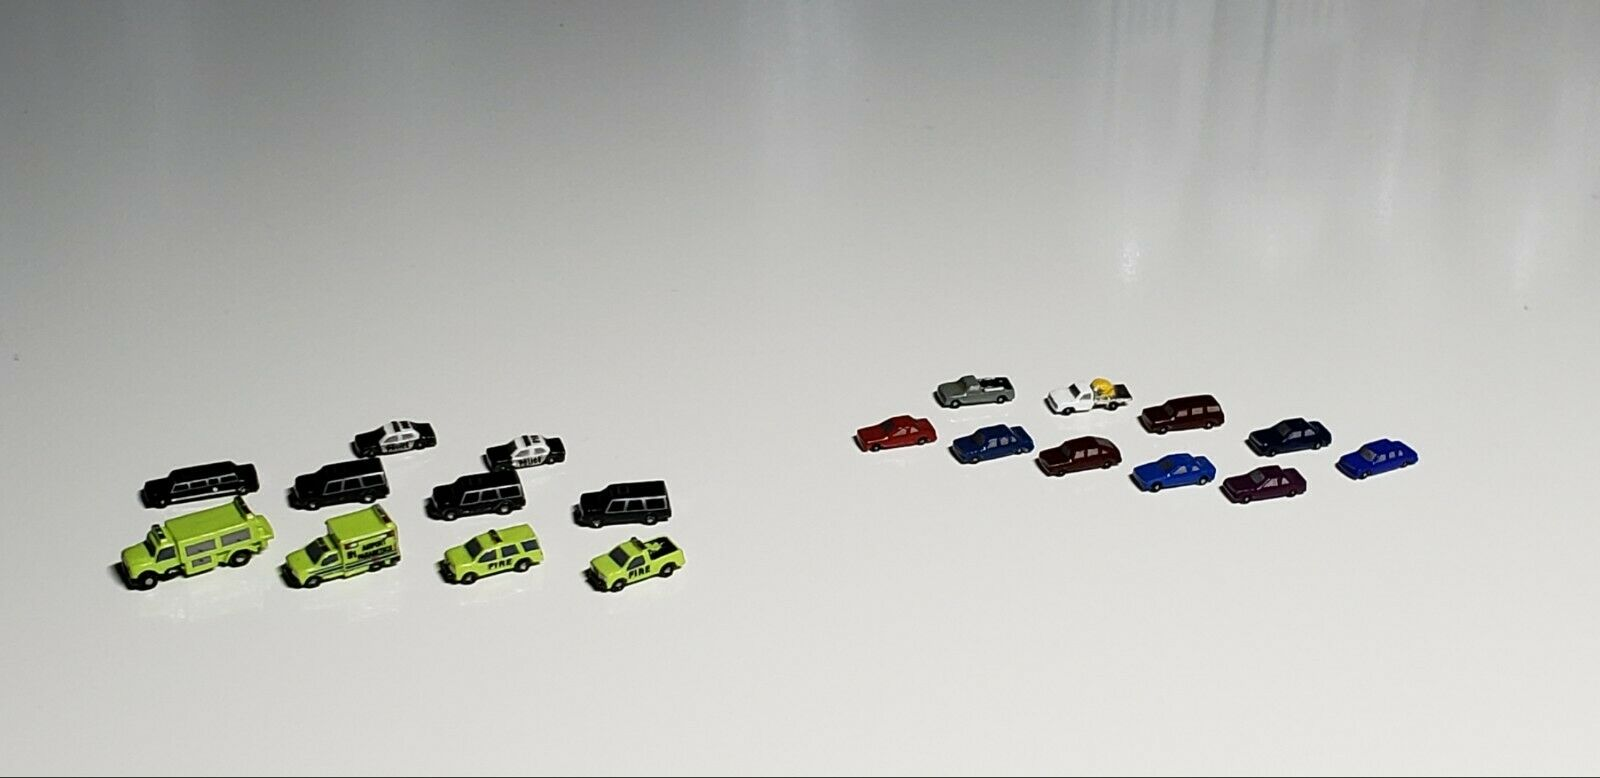 Airport Accessories 1 400 Fire, Presidential, Police & Consumer Vehicles 20-Pack